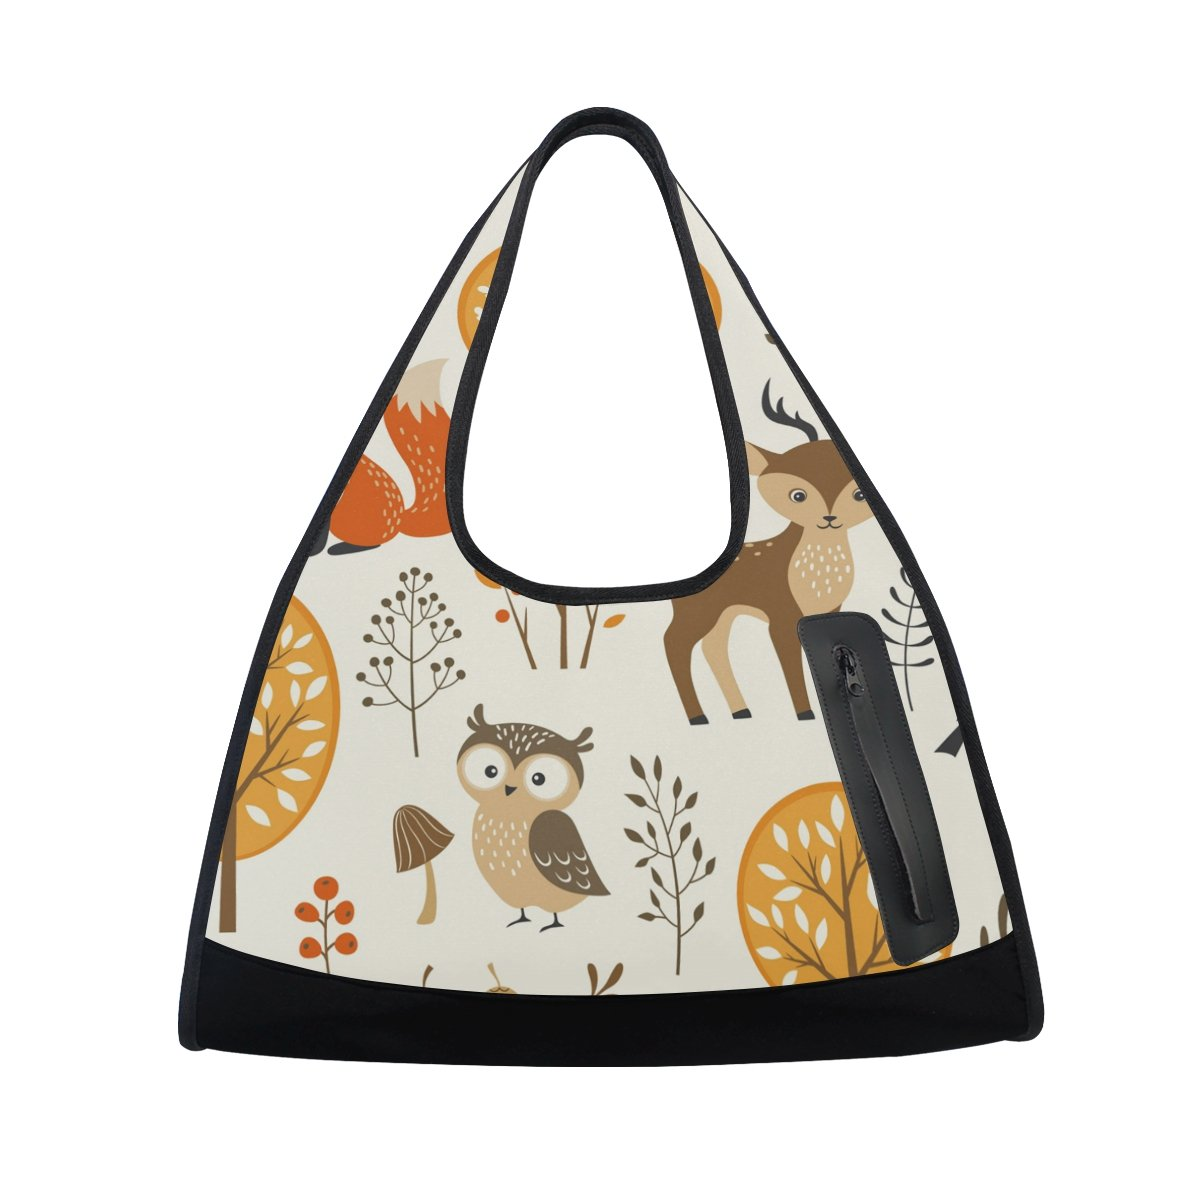 AHOMY Canvas Sports Gym Bag Tree Bird Owl Deer Fox Travel Shoulder Bag